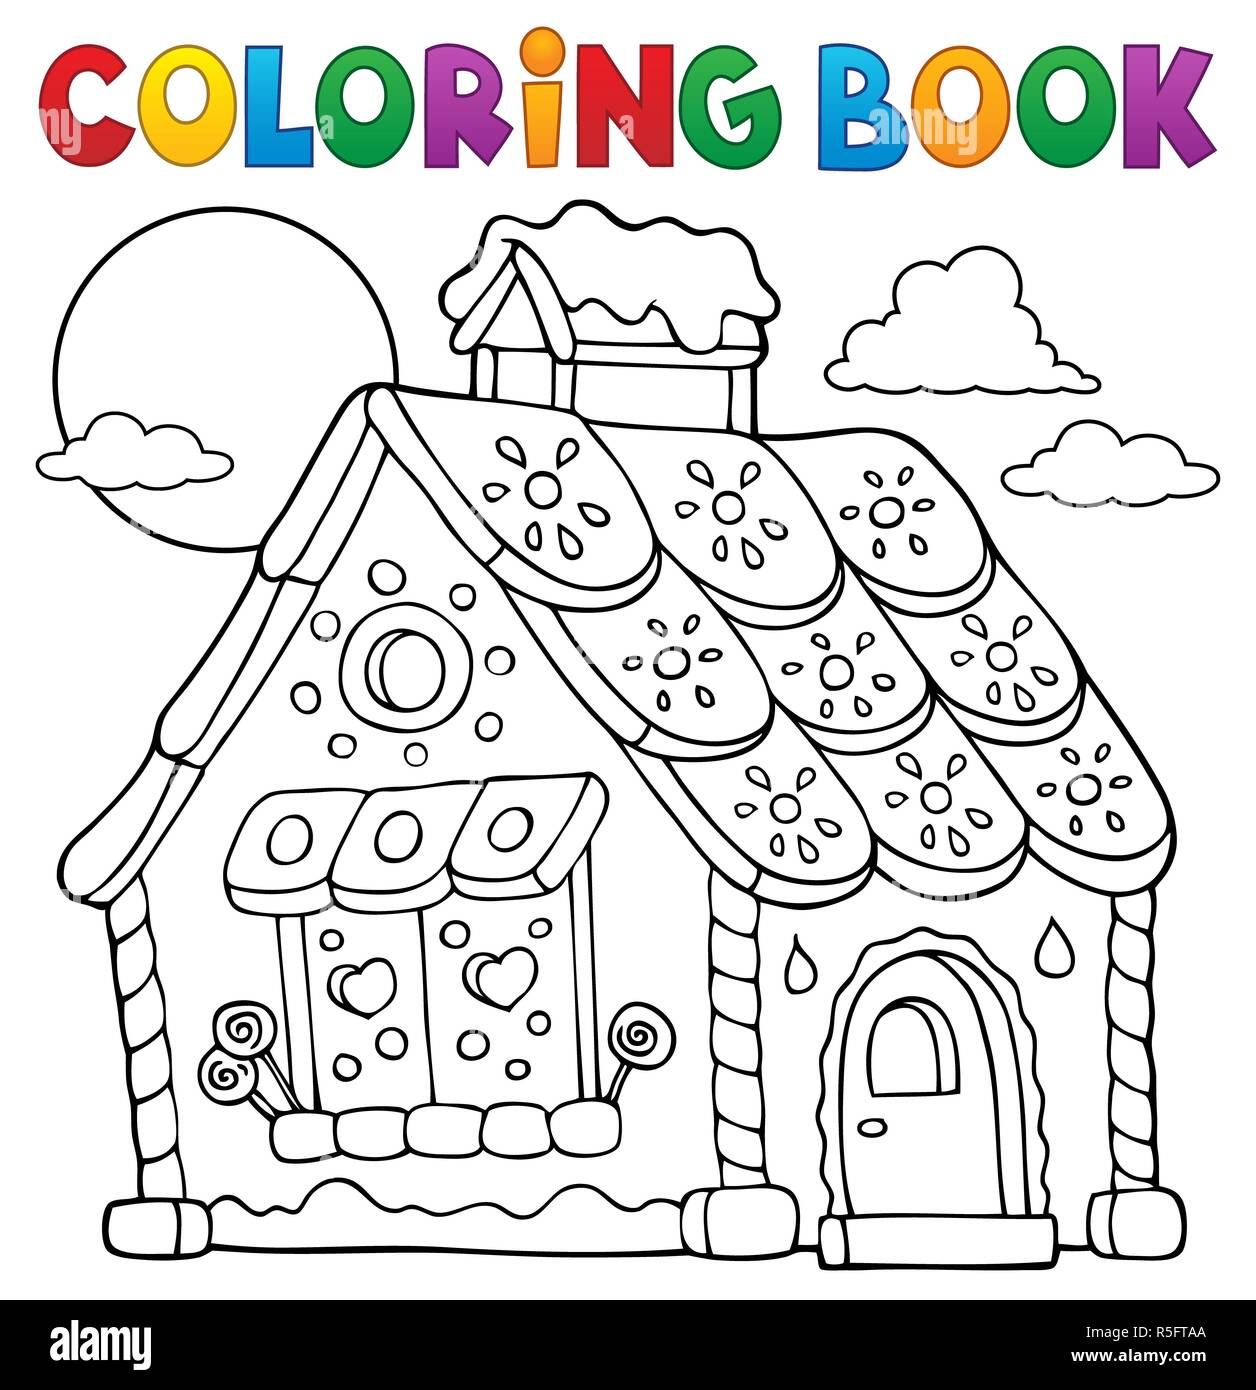 Coloring Book Gingerbread House Theme 1 Stock Photo: 227156450 - Alamy